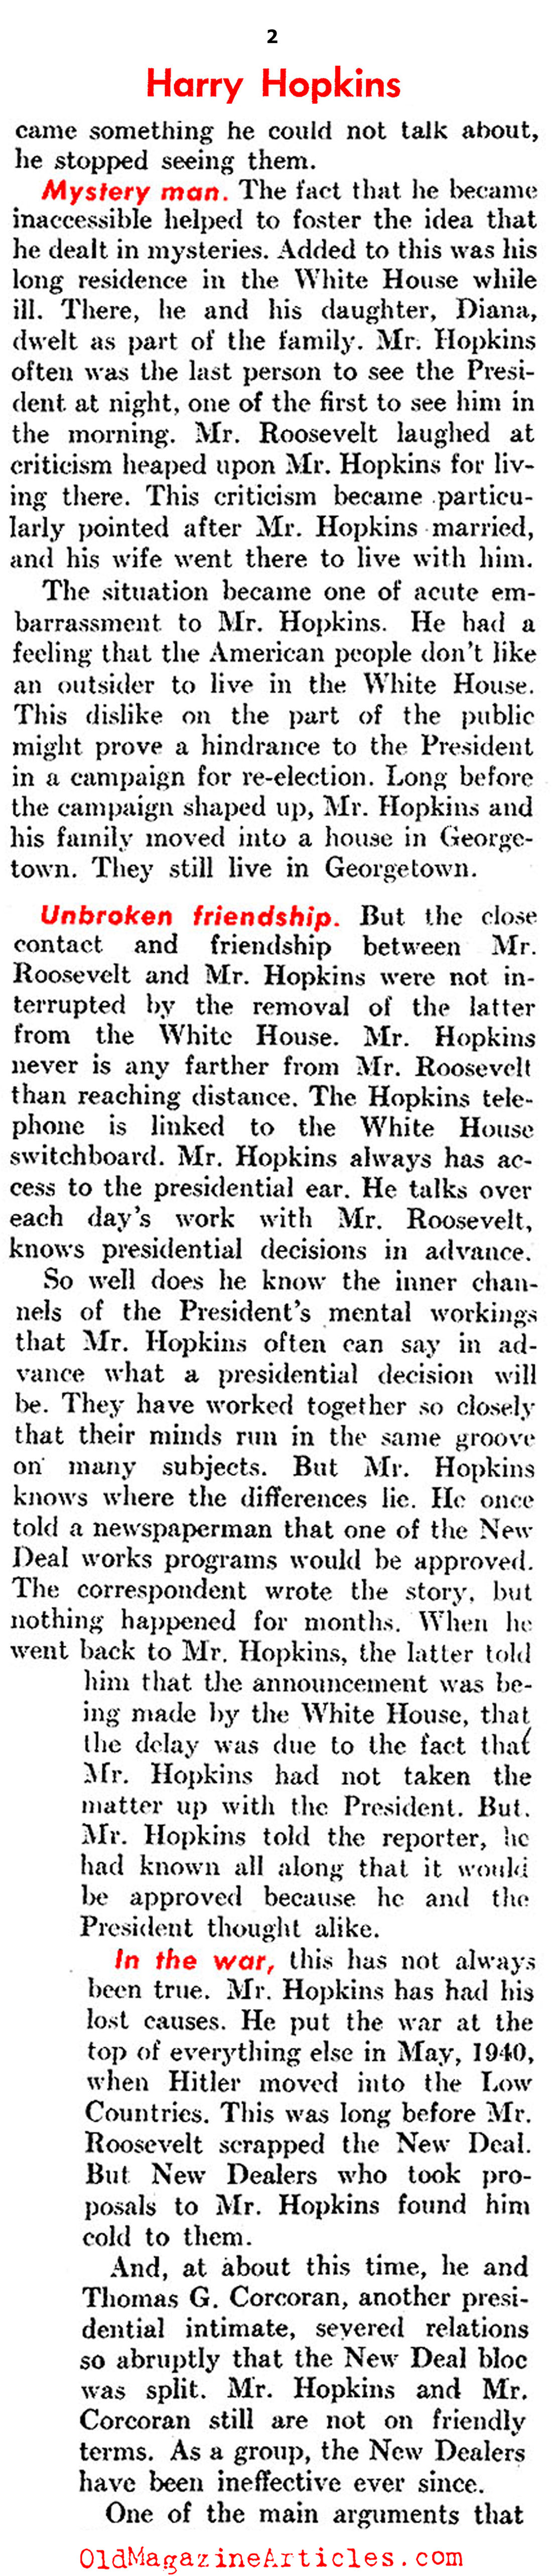 Meet Harry Hopkins (United States News, 1944)